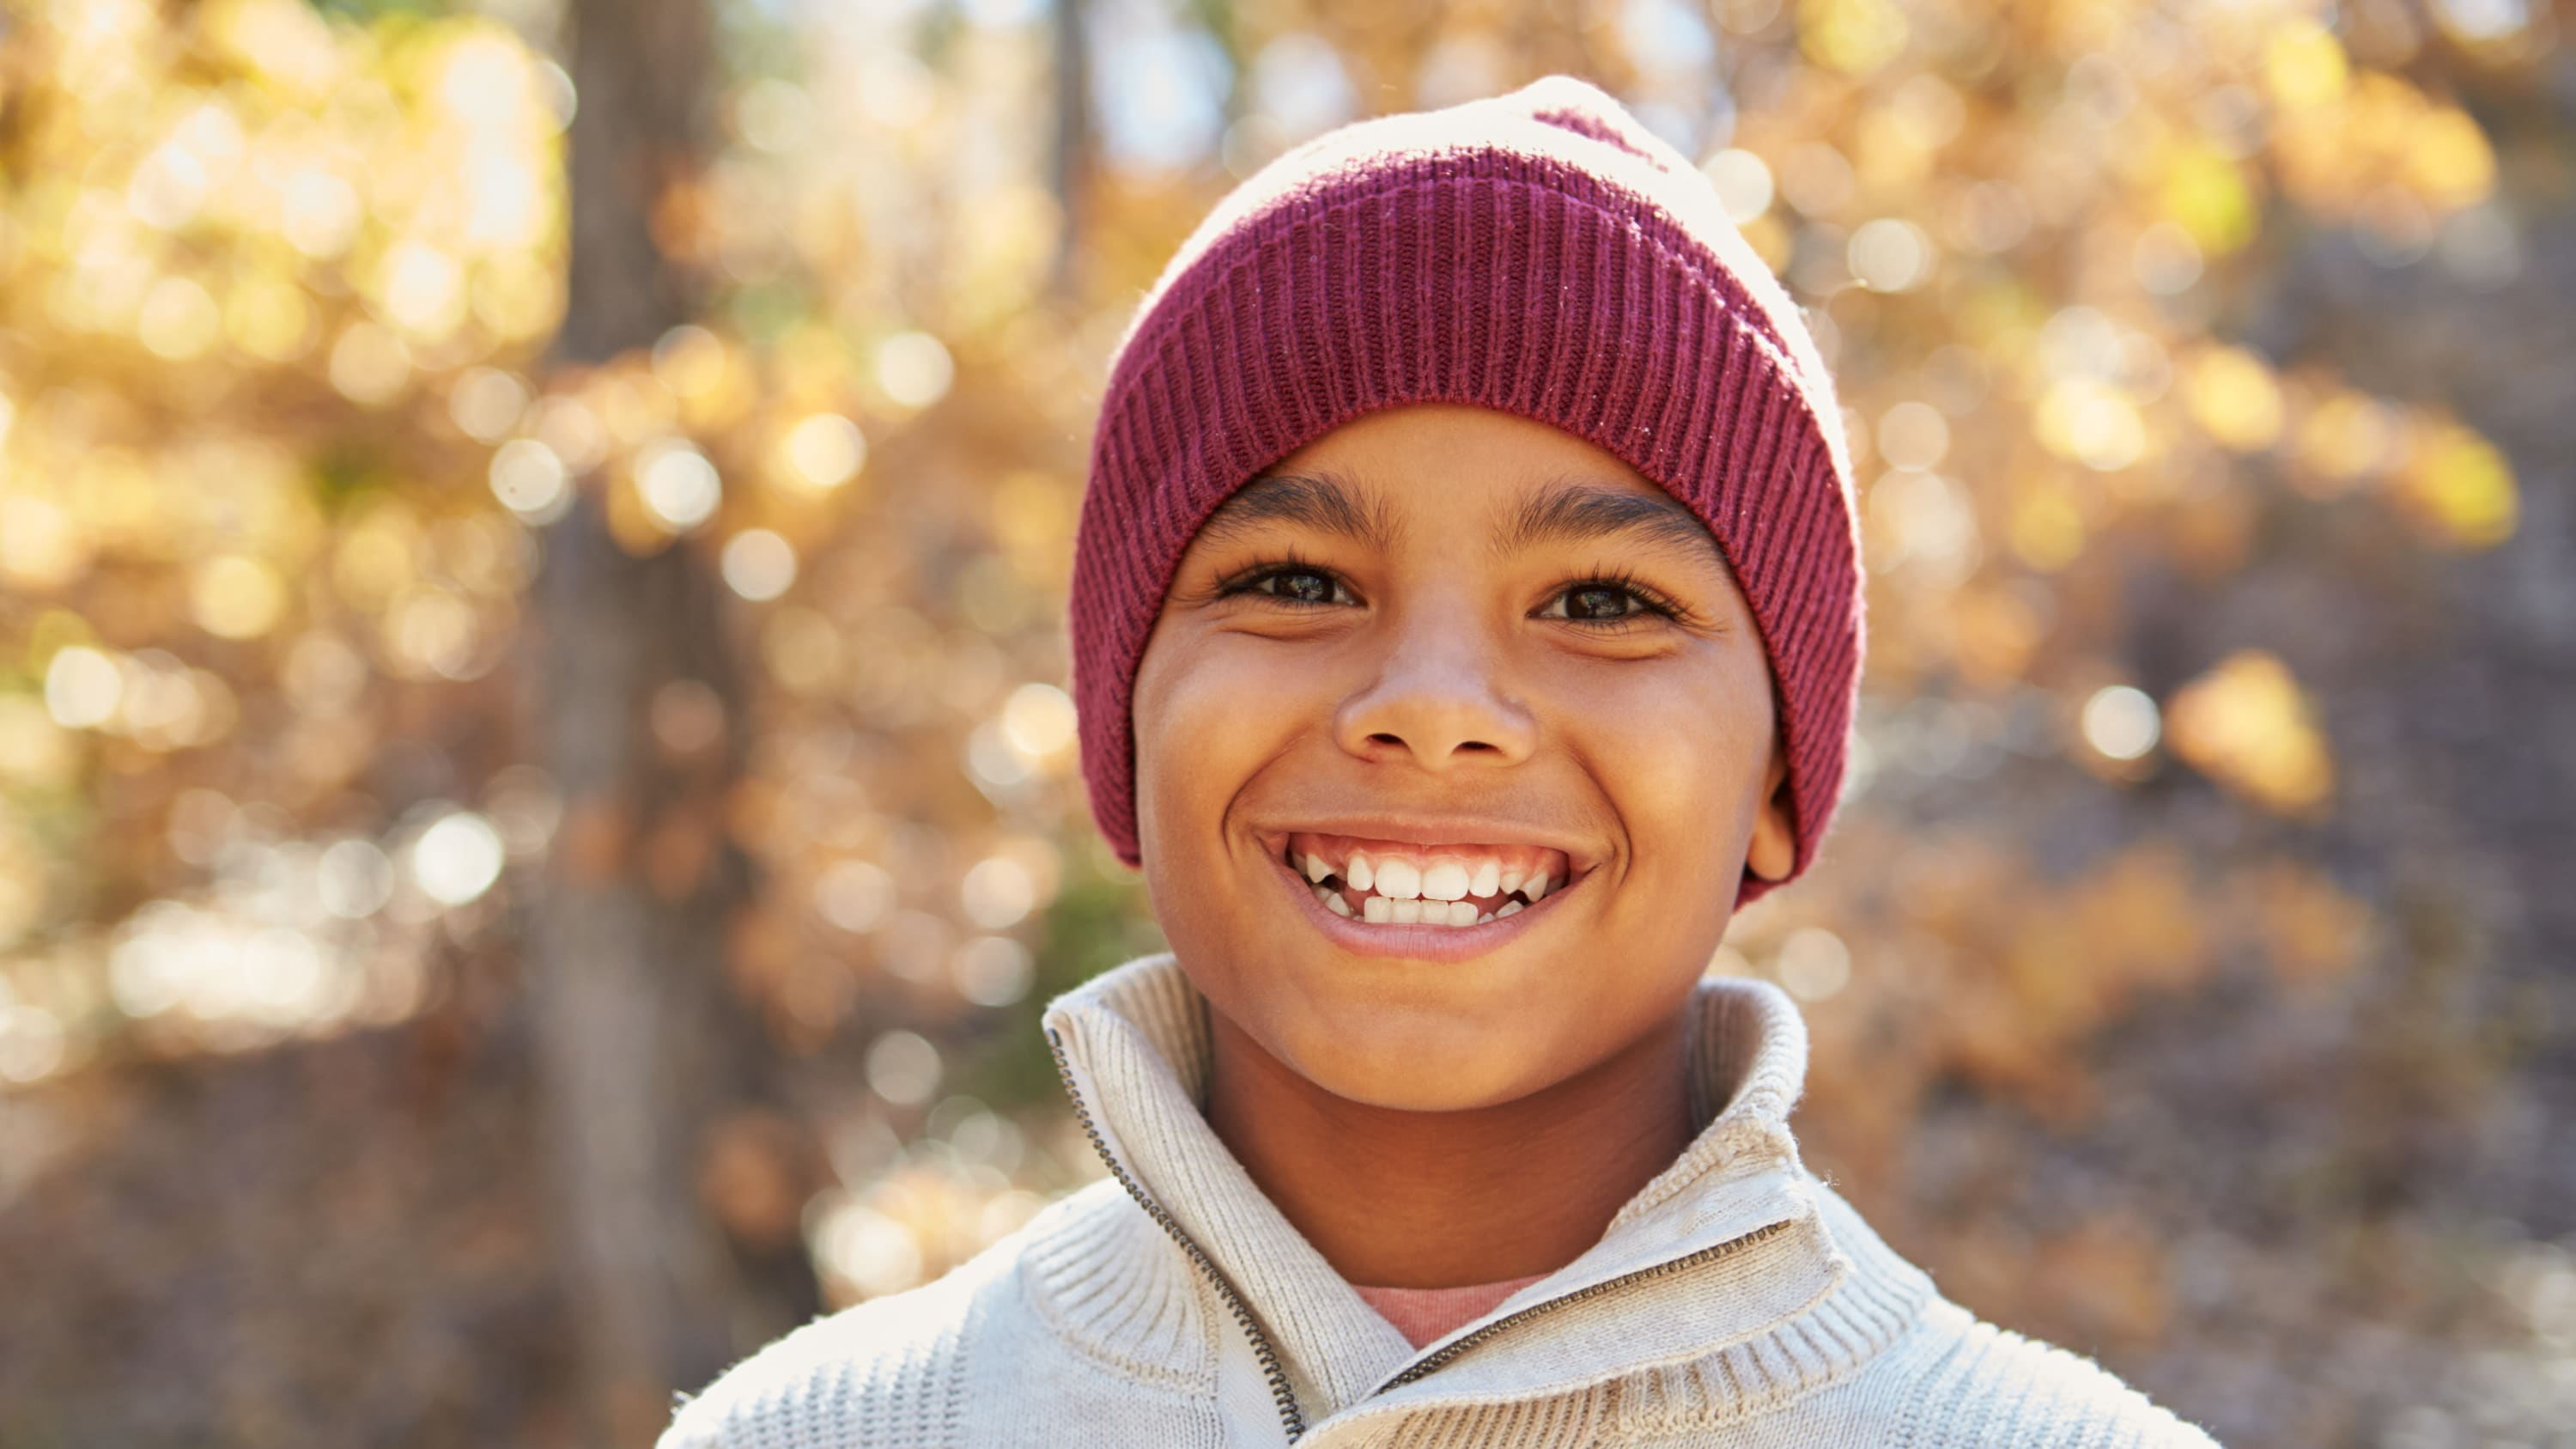 Boy who may have ADHD stands outside with a hat on, smiling.